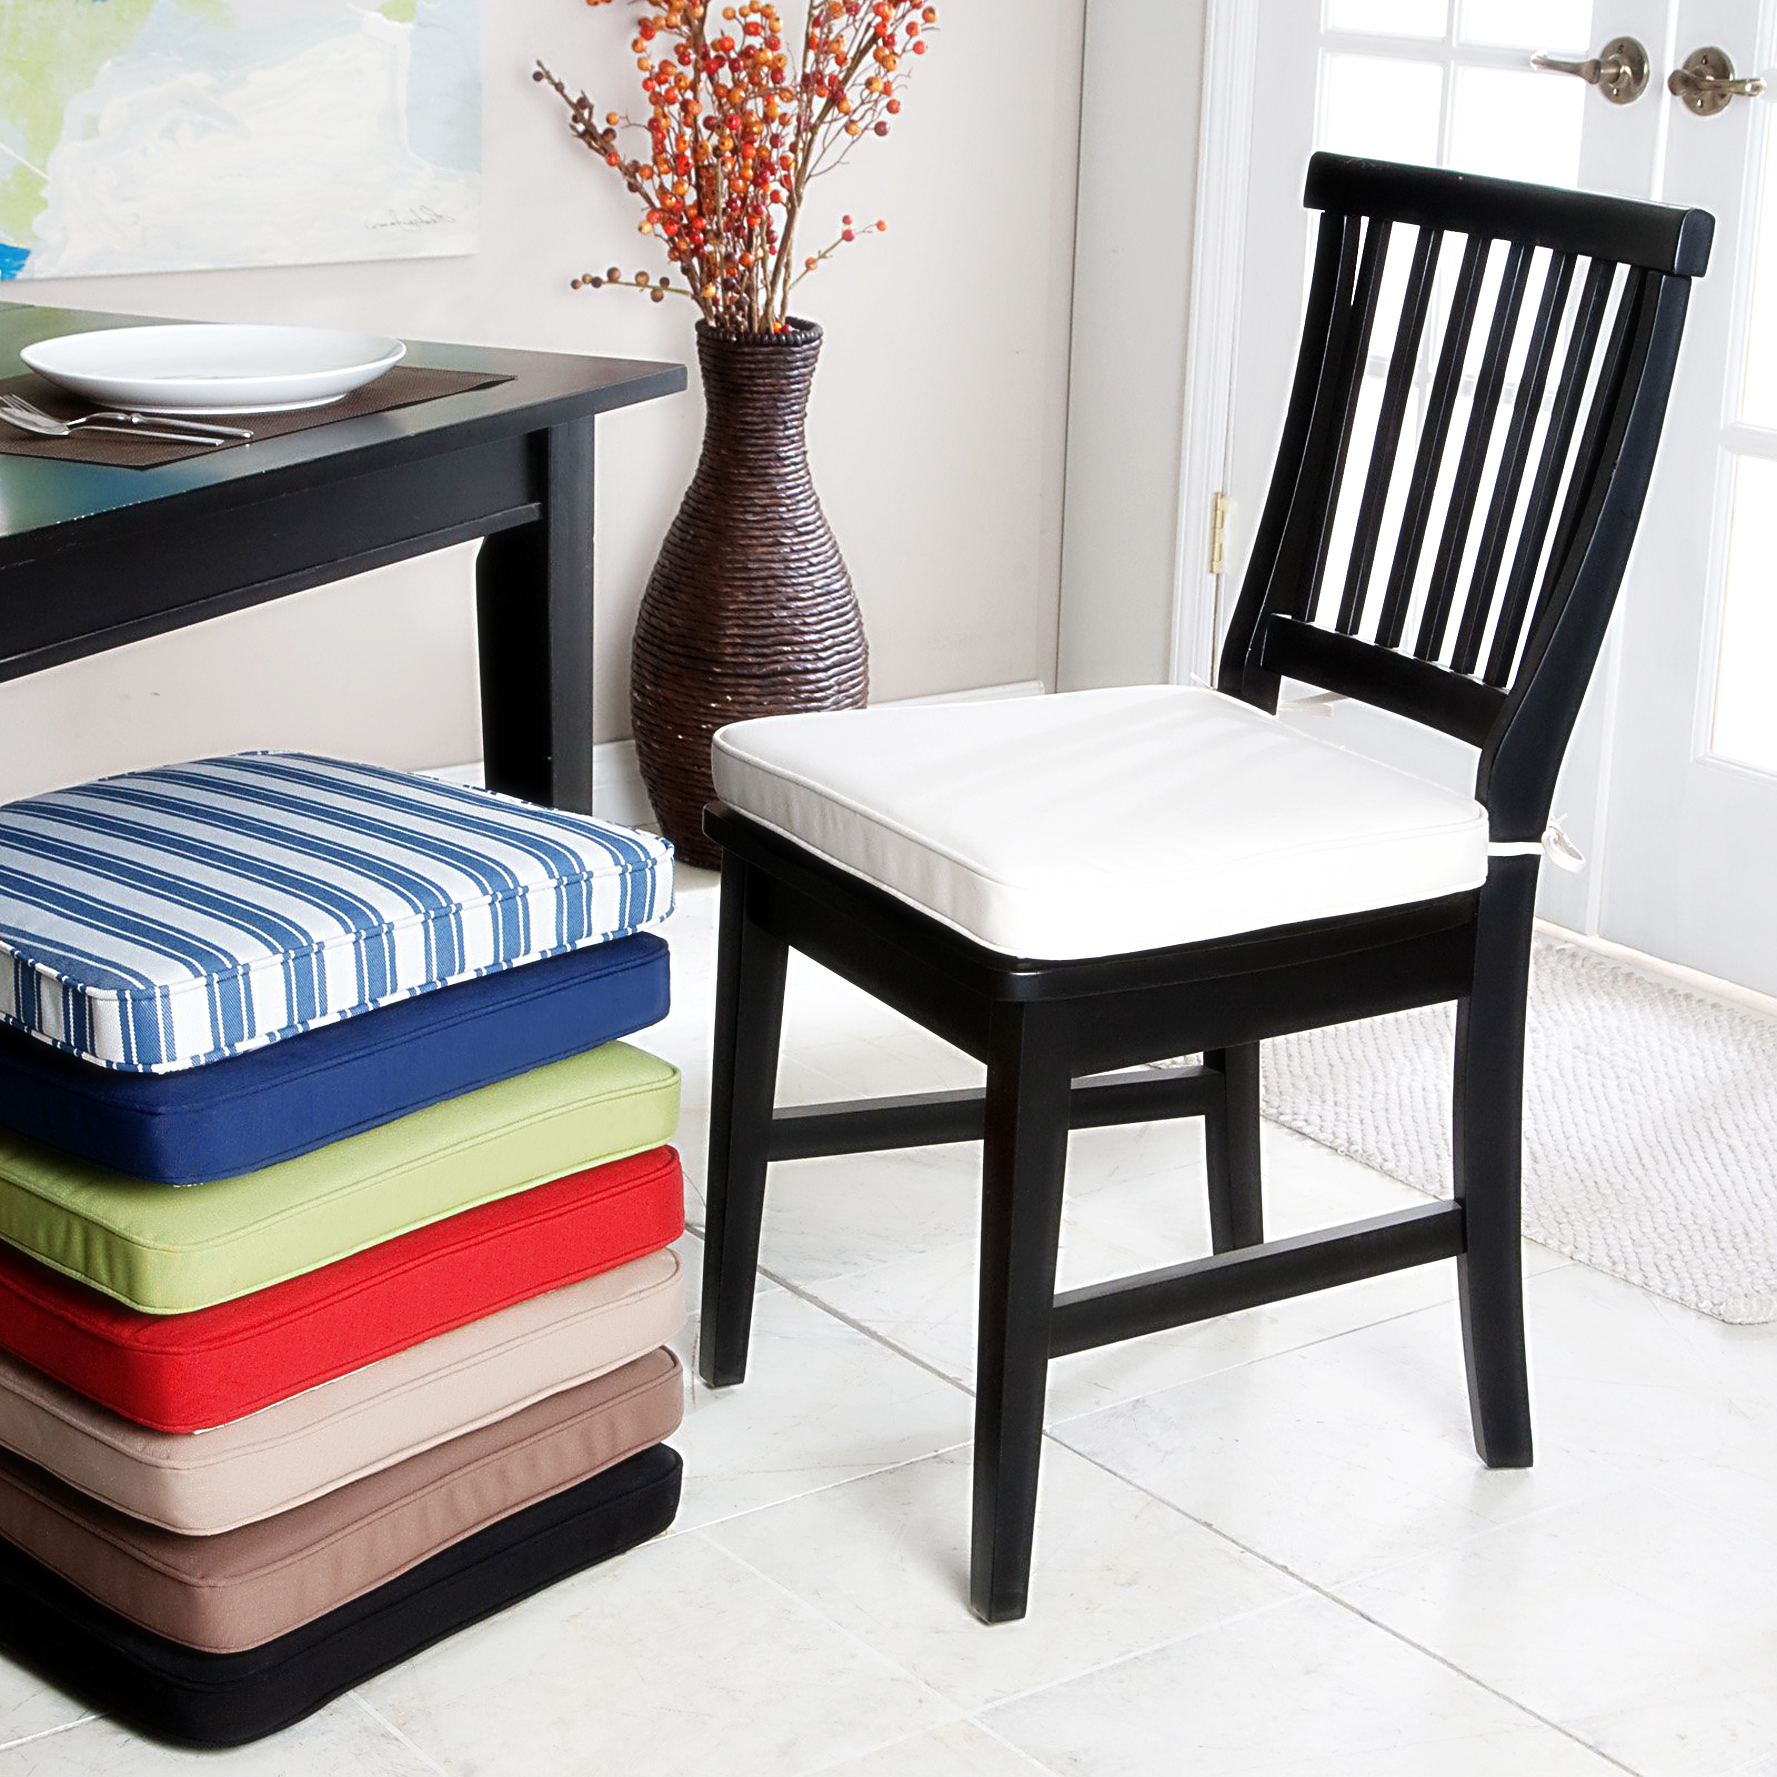 Wooden dining chairs with cushion - Kitchen Chair Cushions With Tieshomesfeed